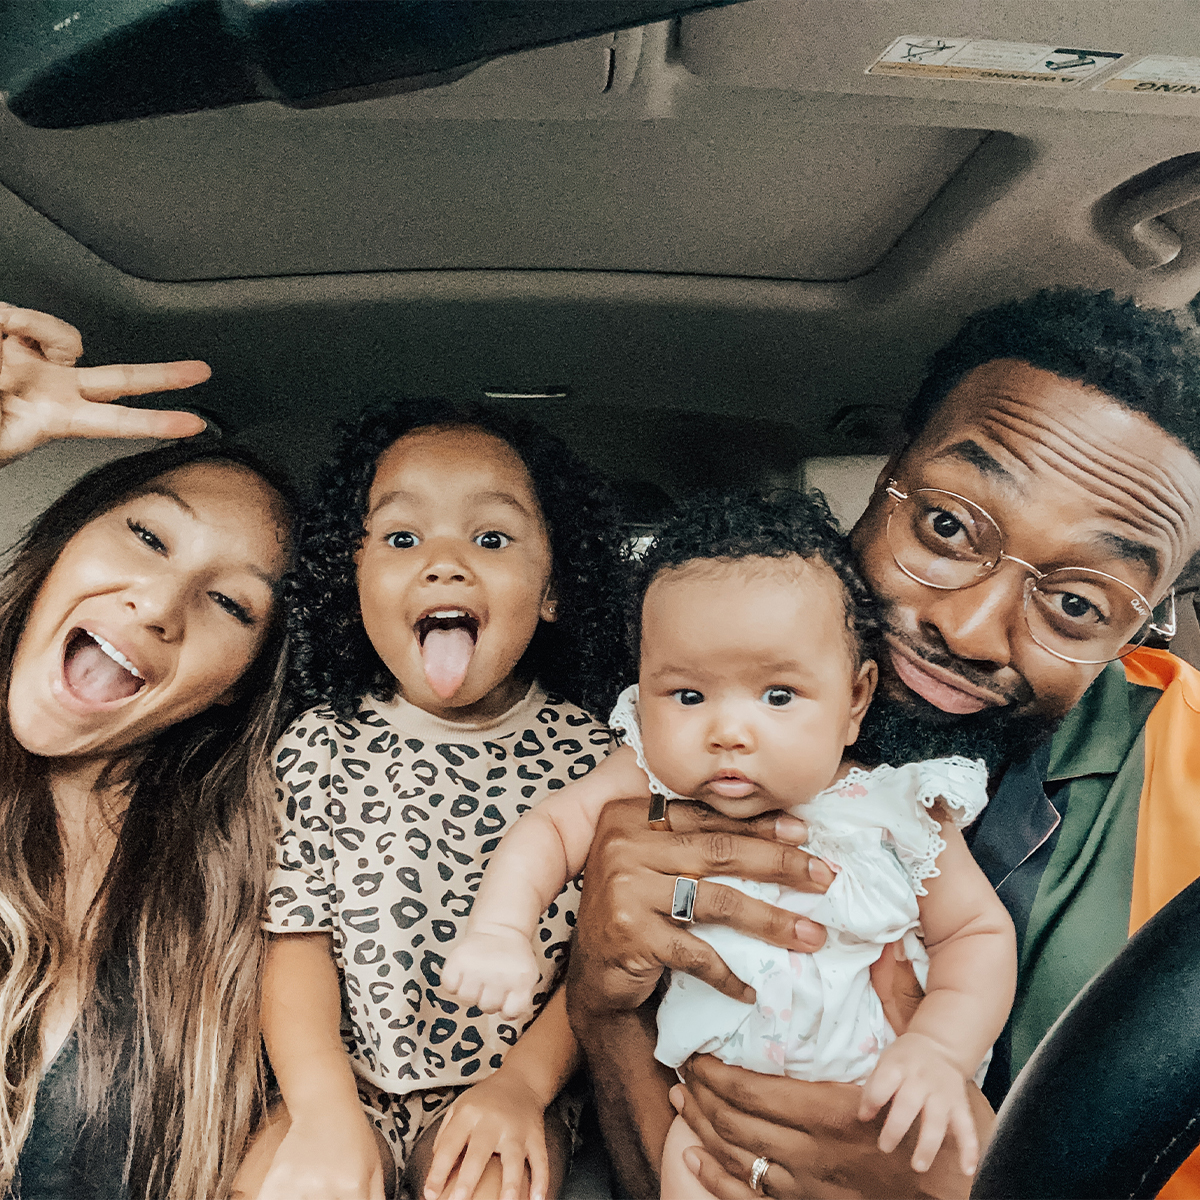 Family taking goofy selfie in car